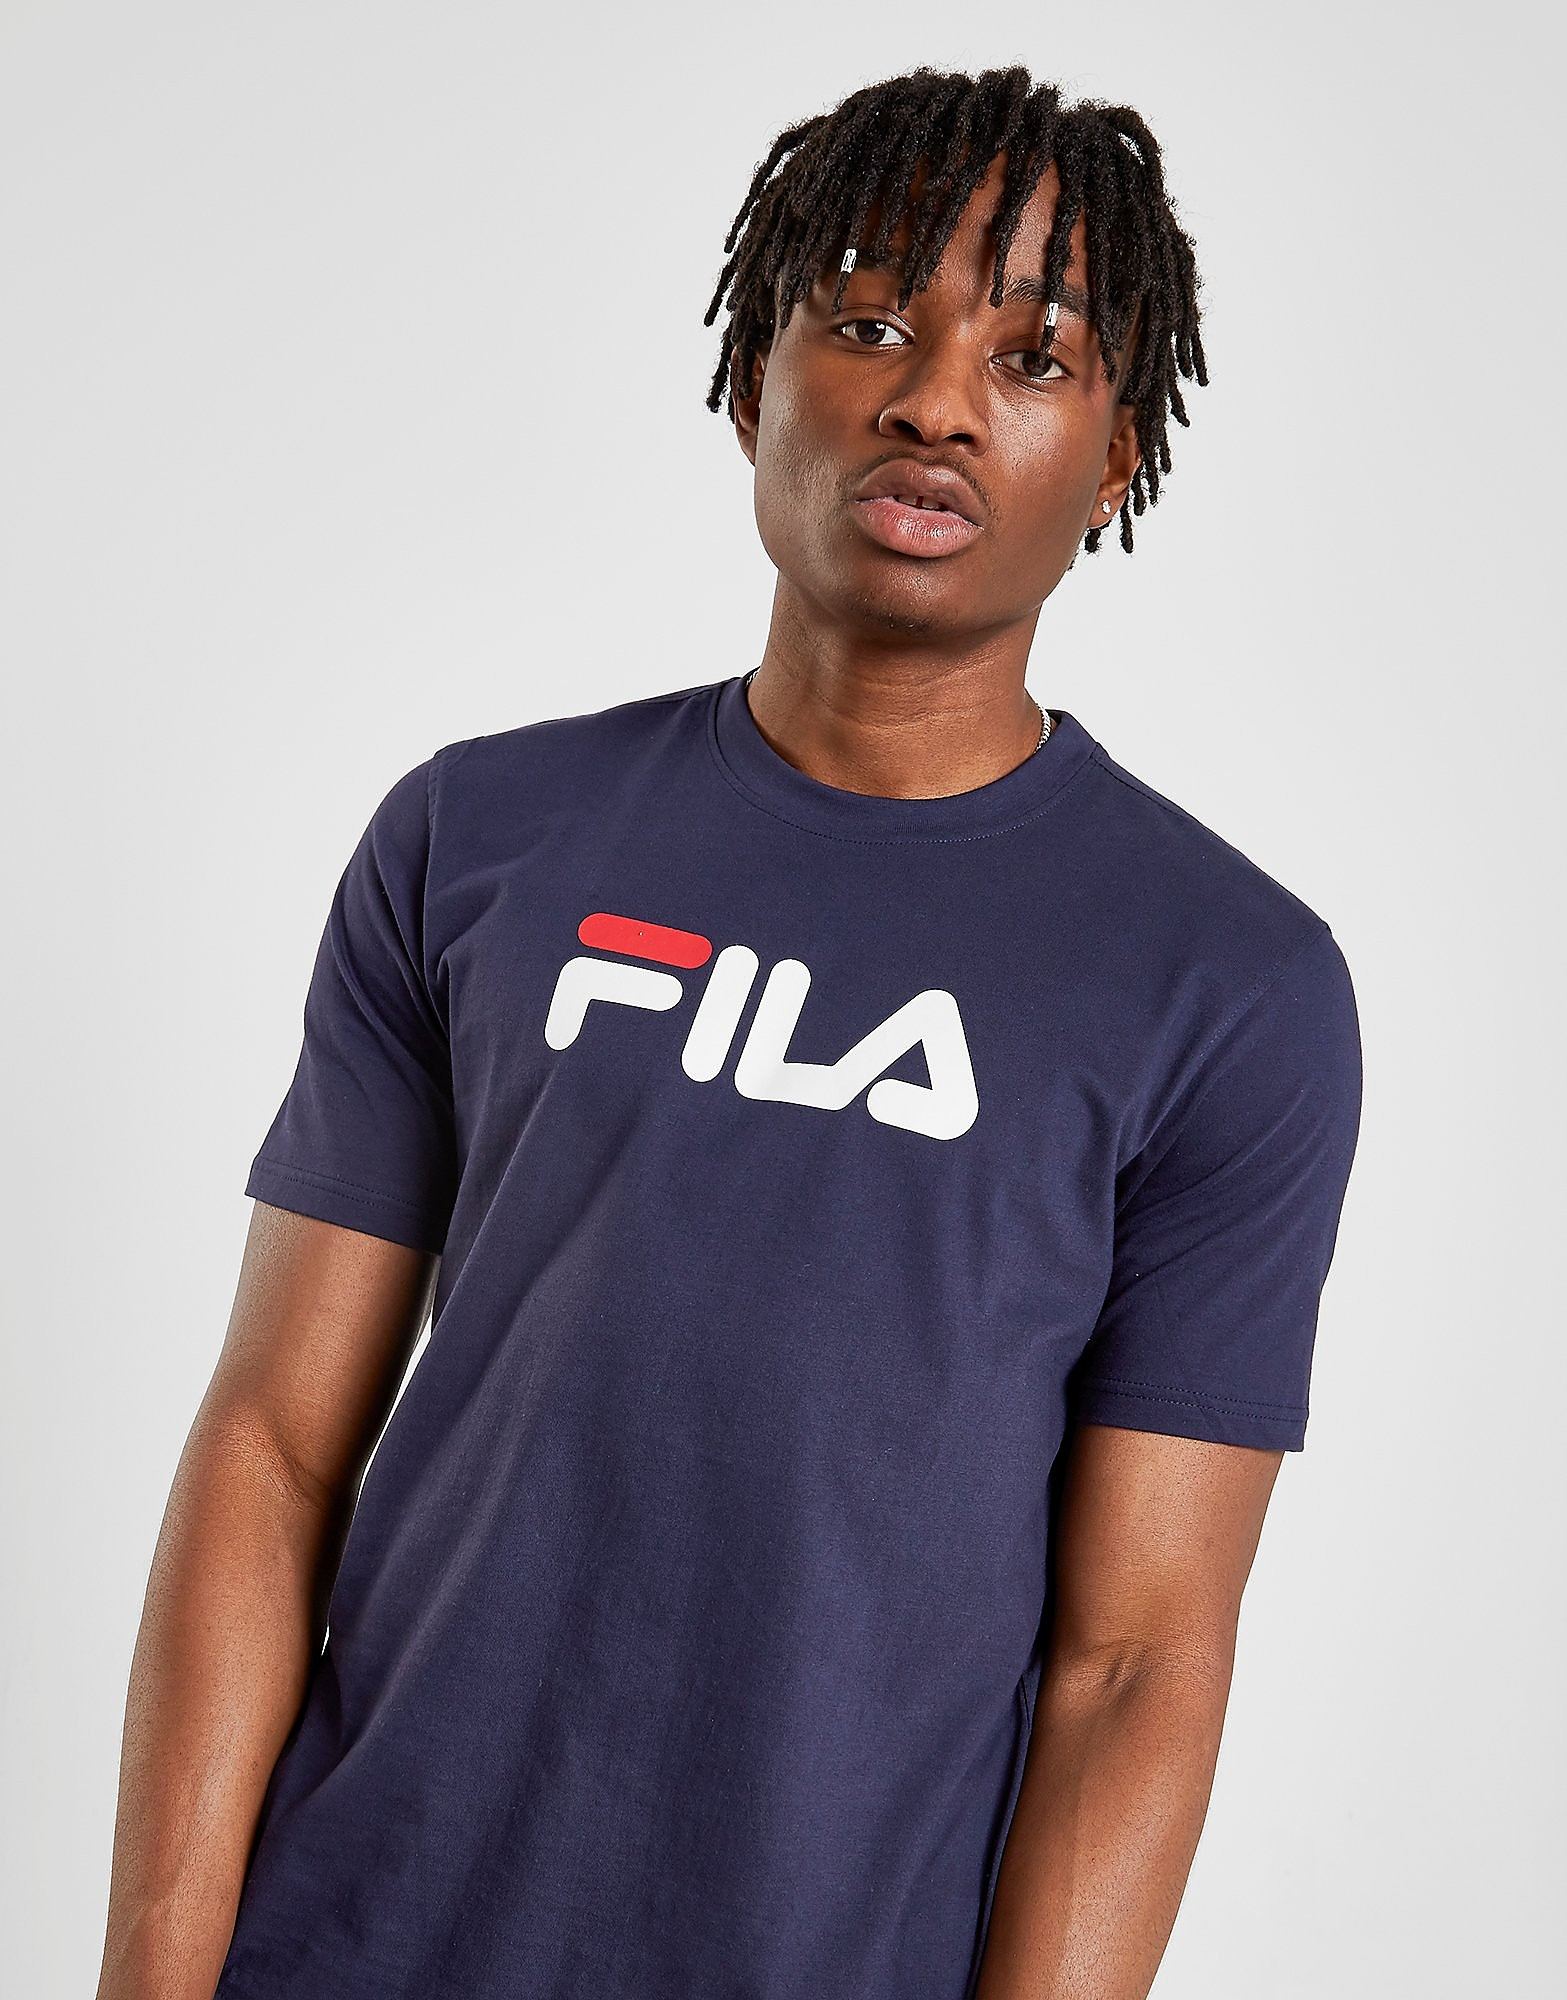 Fila Eagle Navy